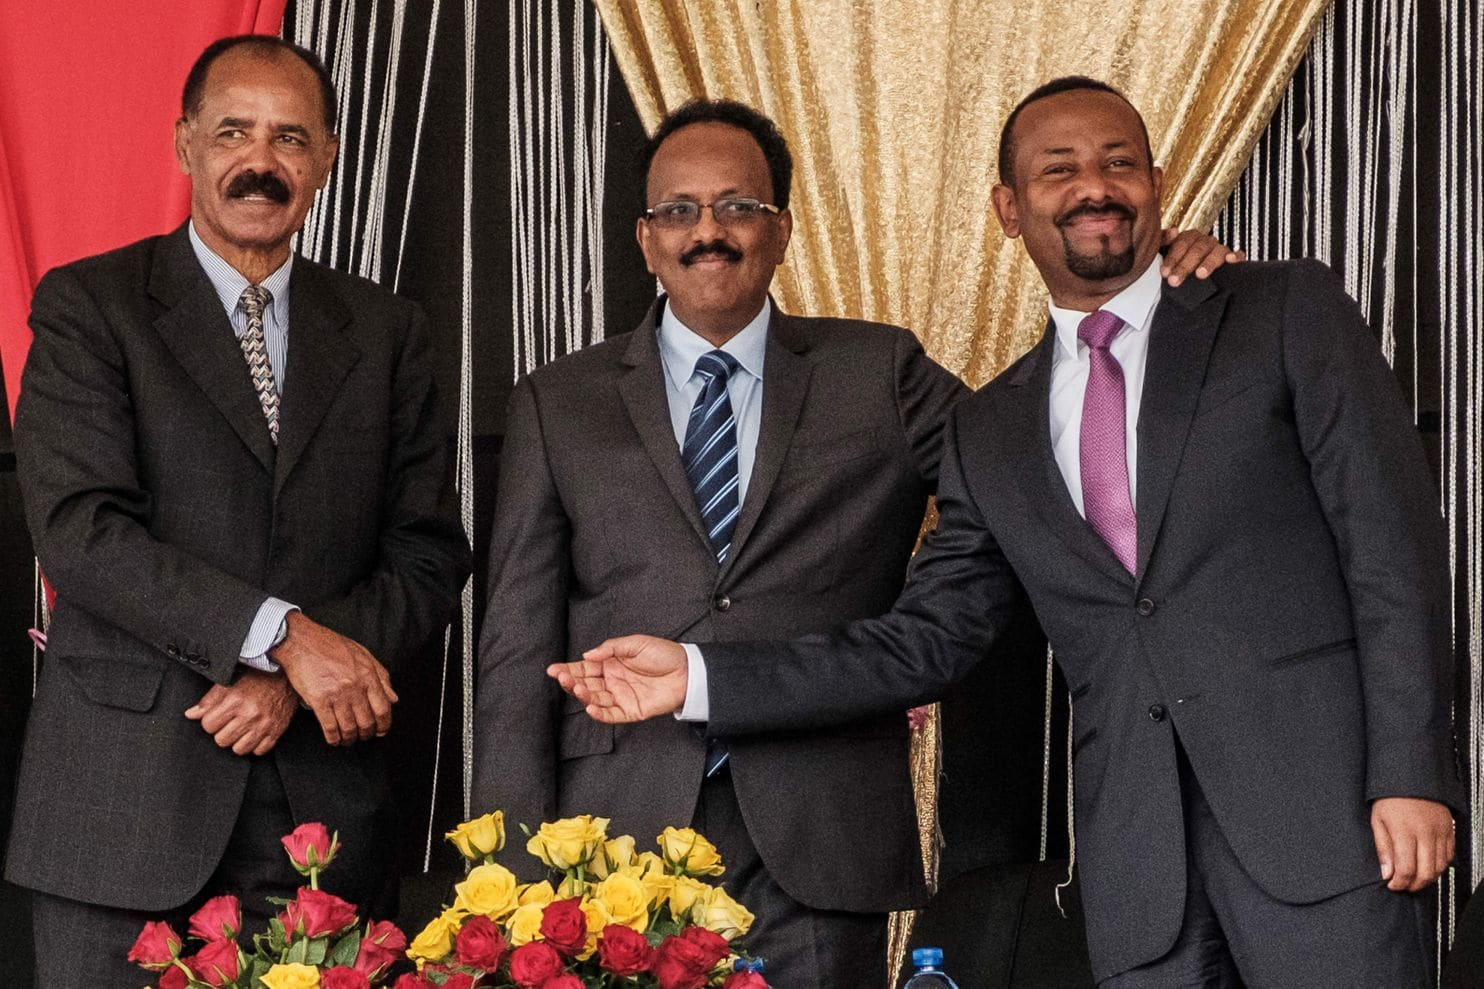 President Isaias proposes a regional bloc to balance the rising influence of Gulf states on Red Sea region, writes Prof. Harry Verhoeven